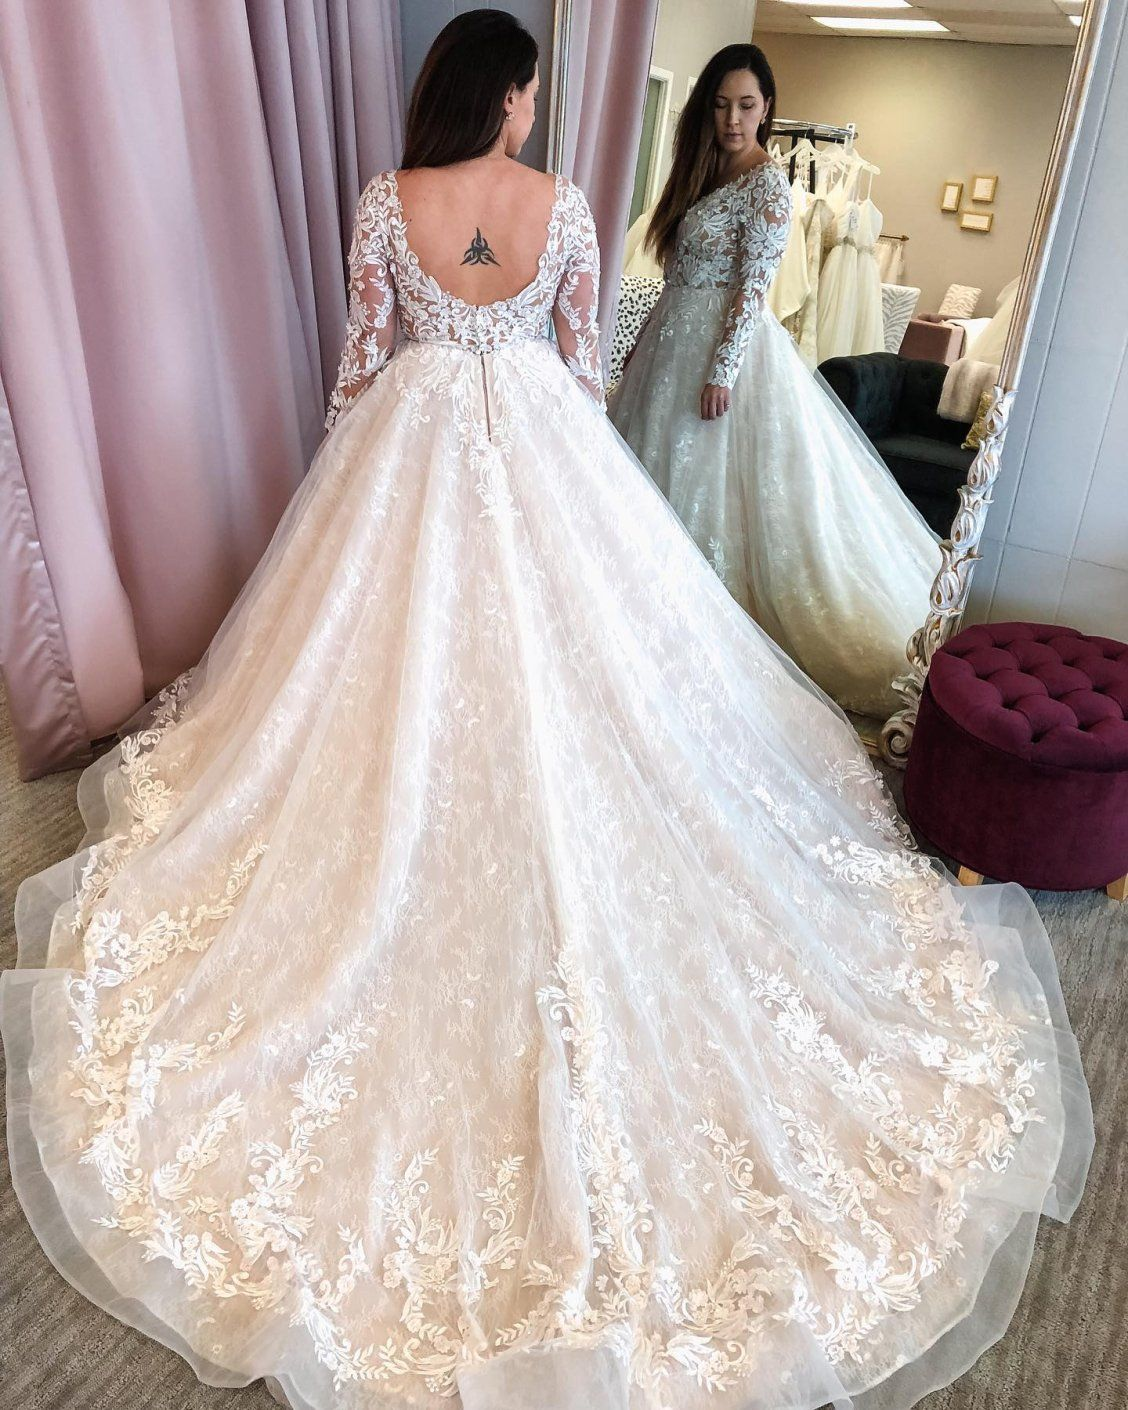 Princess Wedding Dresses By Maggie Sottero Wedding Dresses Ball Gown Wedding Dress Princess Ball Gowns [ 1410 x 1128 Pixel ]